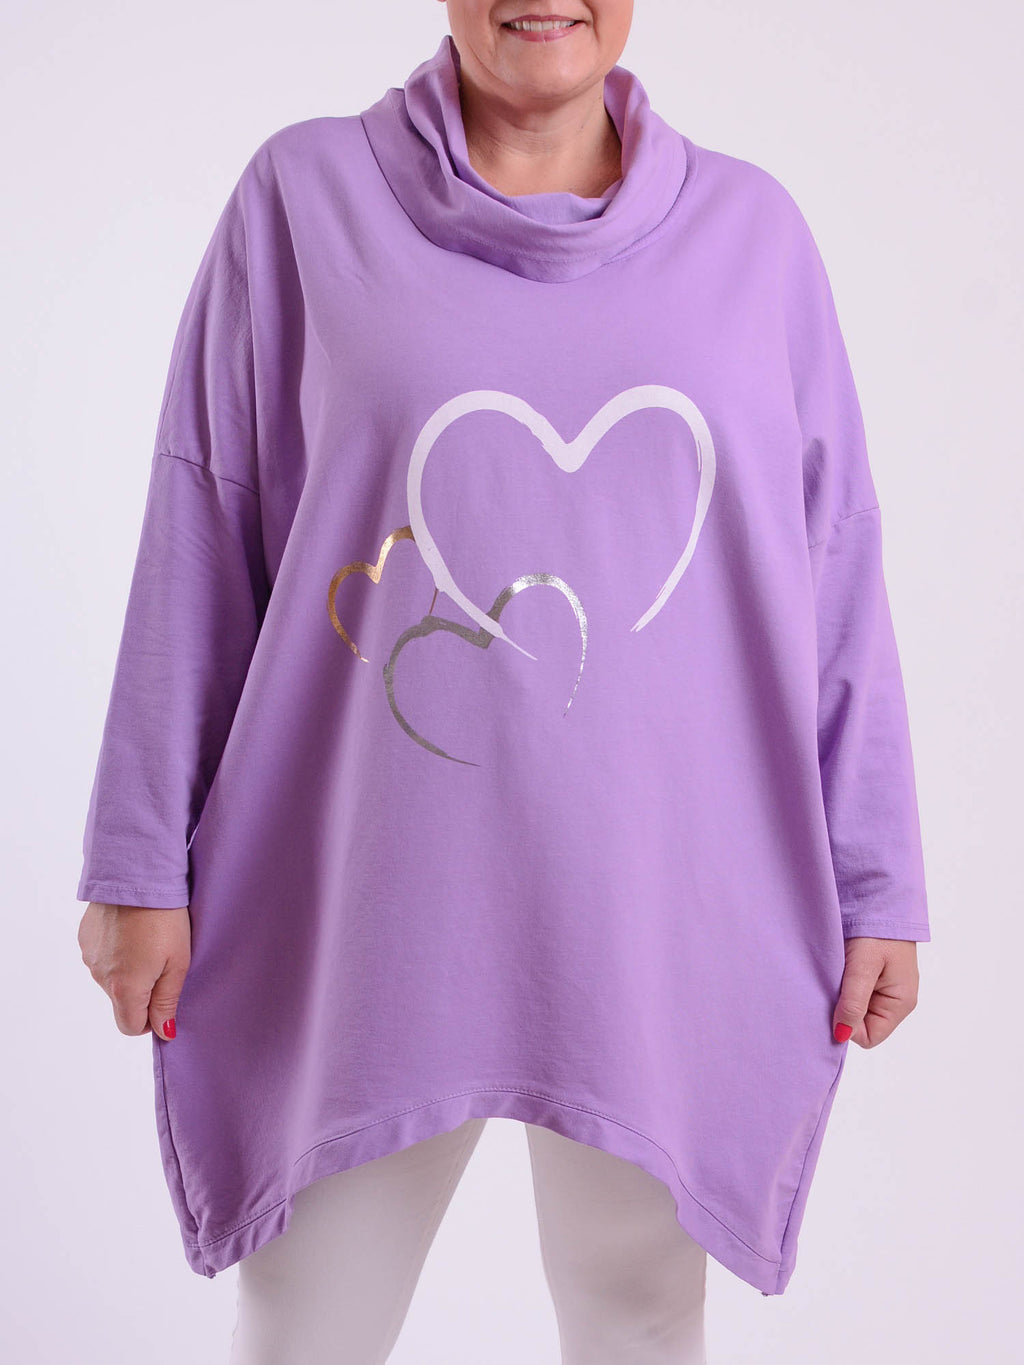 Heart Motif Sweat Top - 1887 - Pure Plus Clothing